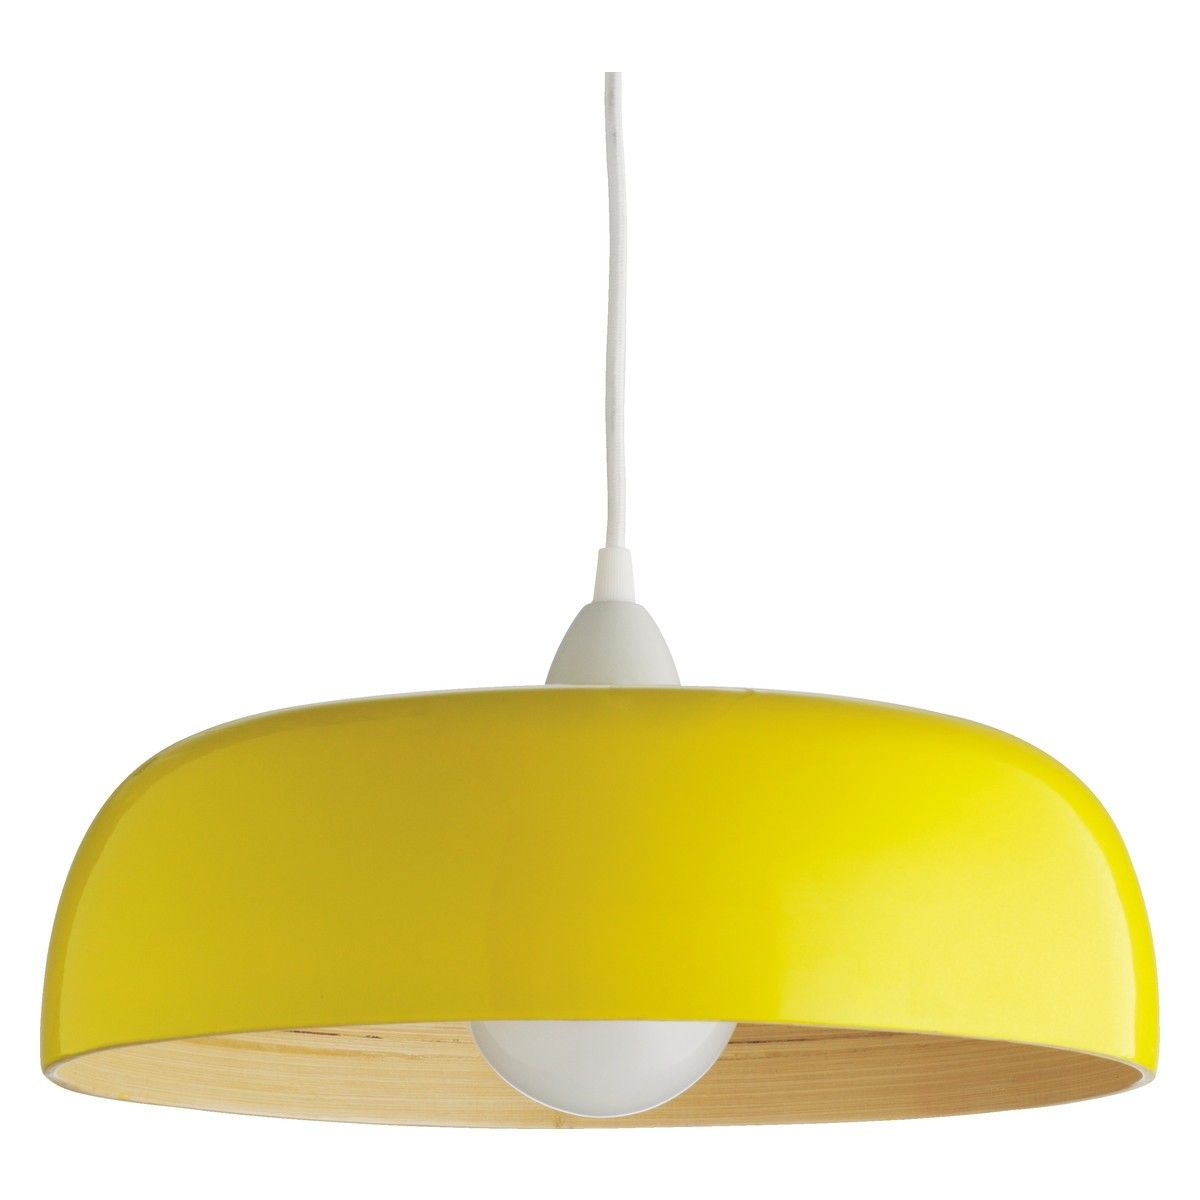 MOXLEY Yellow lacquered spunbamboo ceiling light shade Saffron